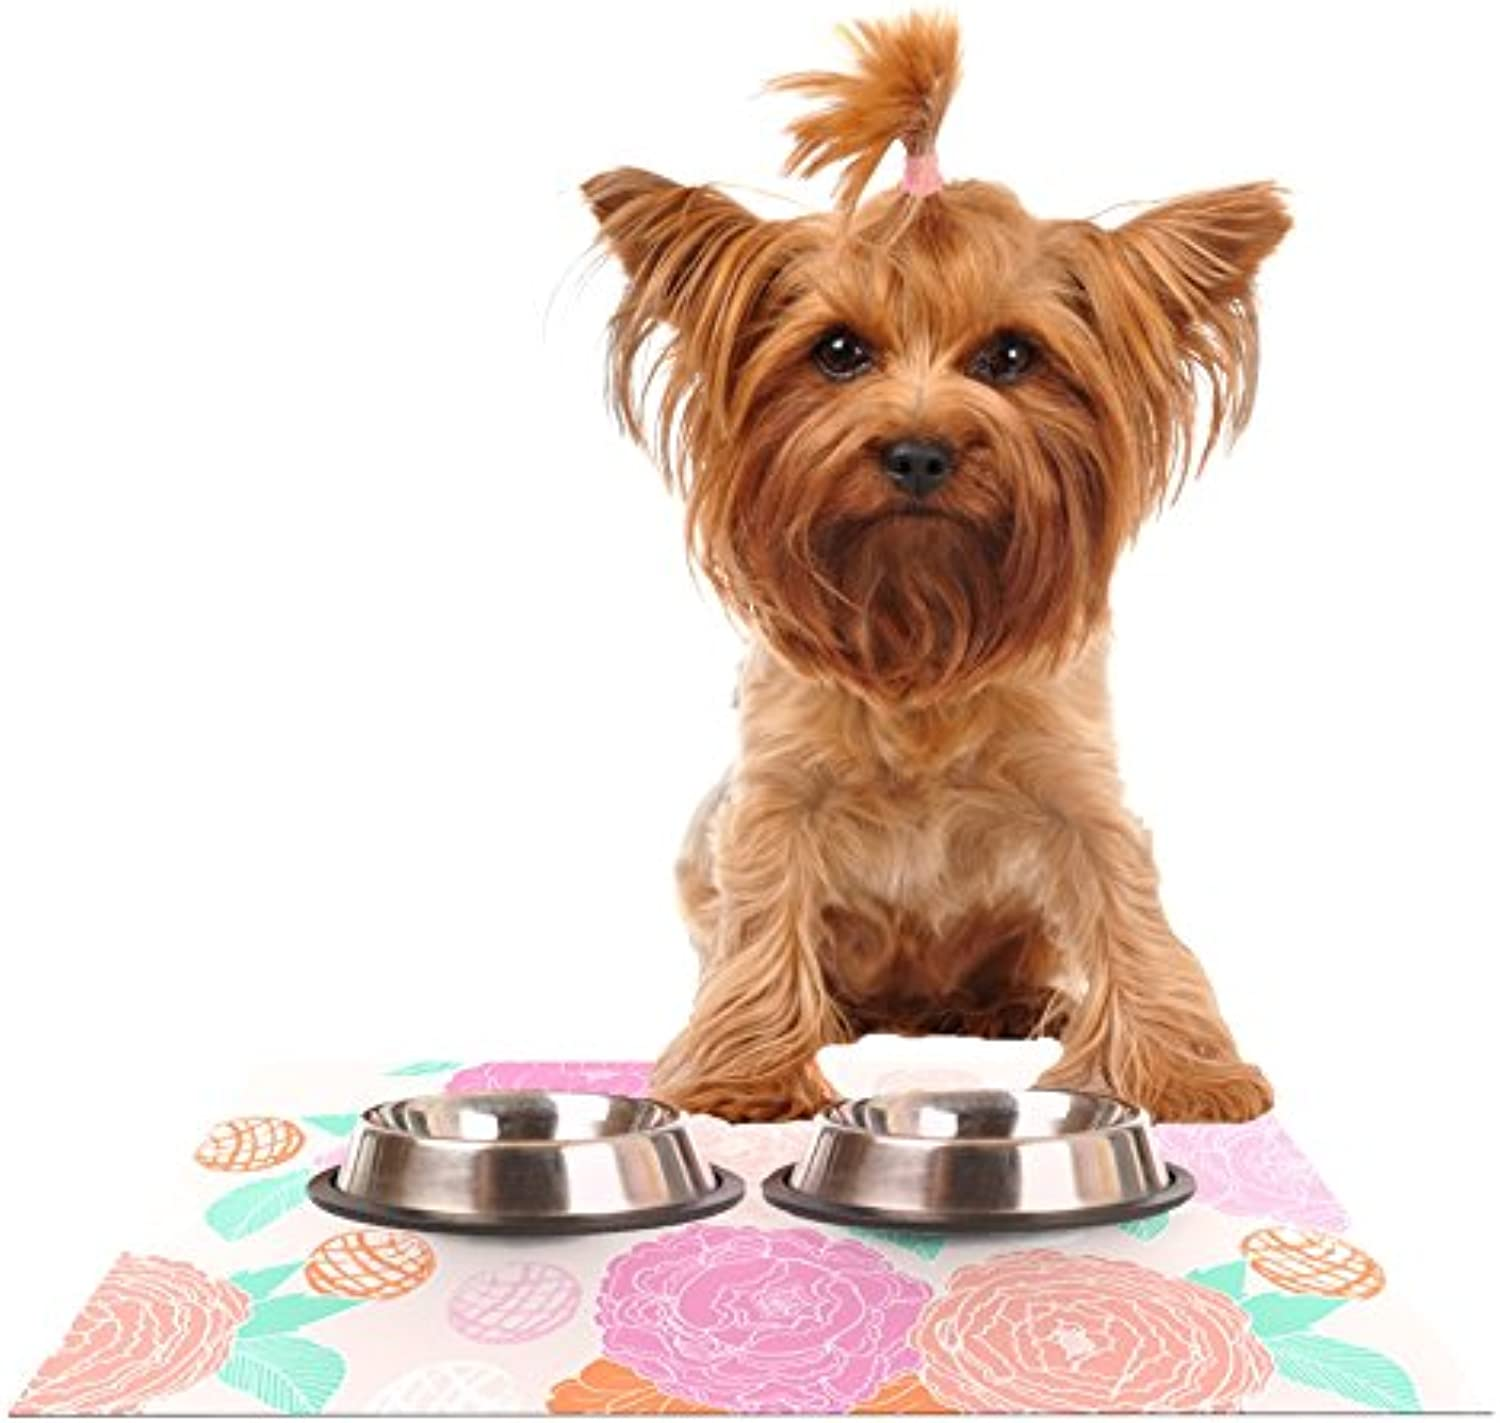 Kess InHouse Anneline Sophia Peonies Pink Peach Teal Feeding Mat for Pet Bowls, 24 by 15